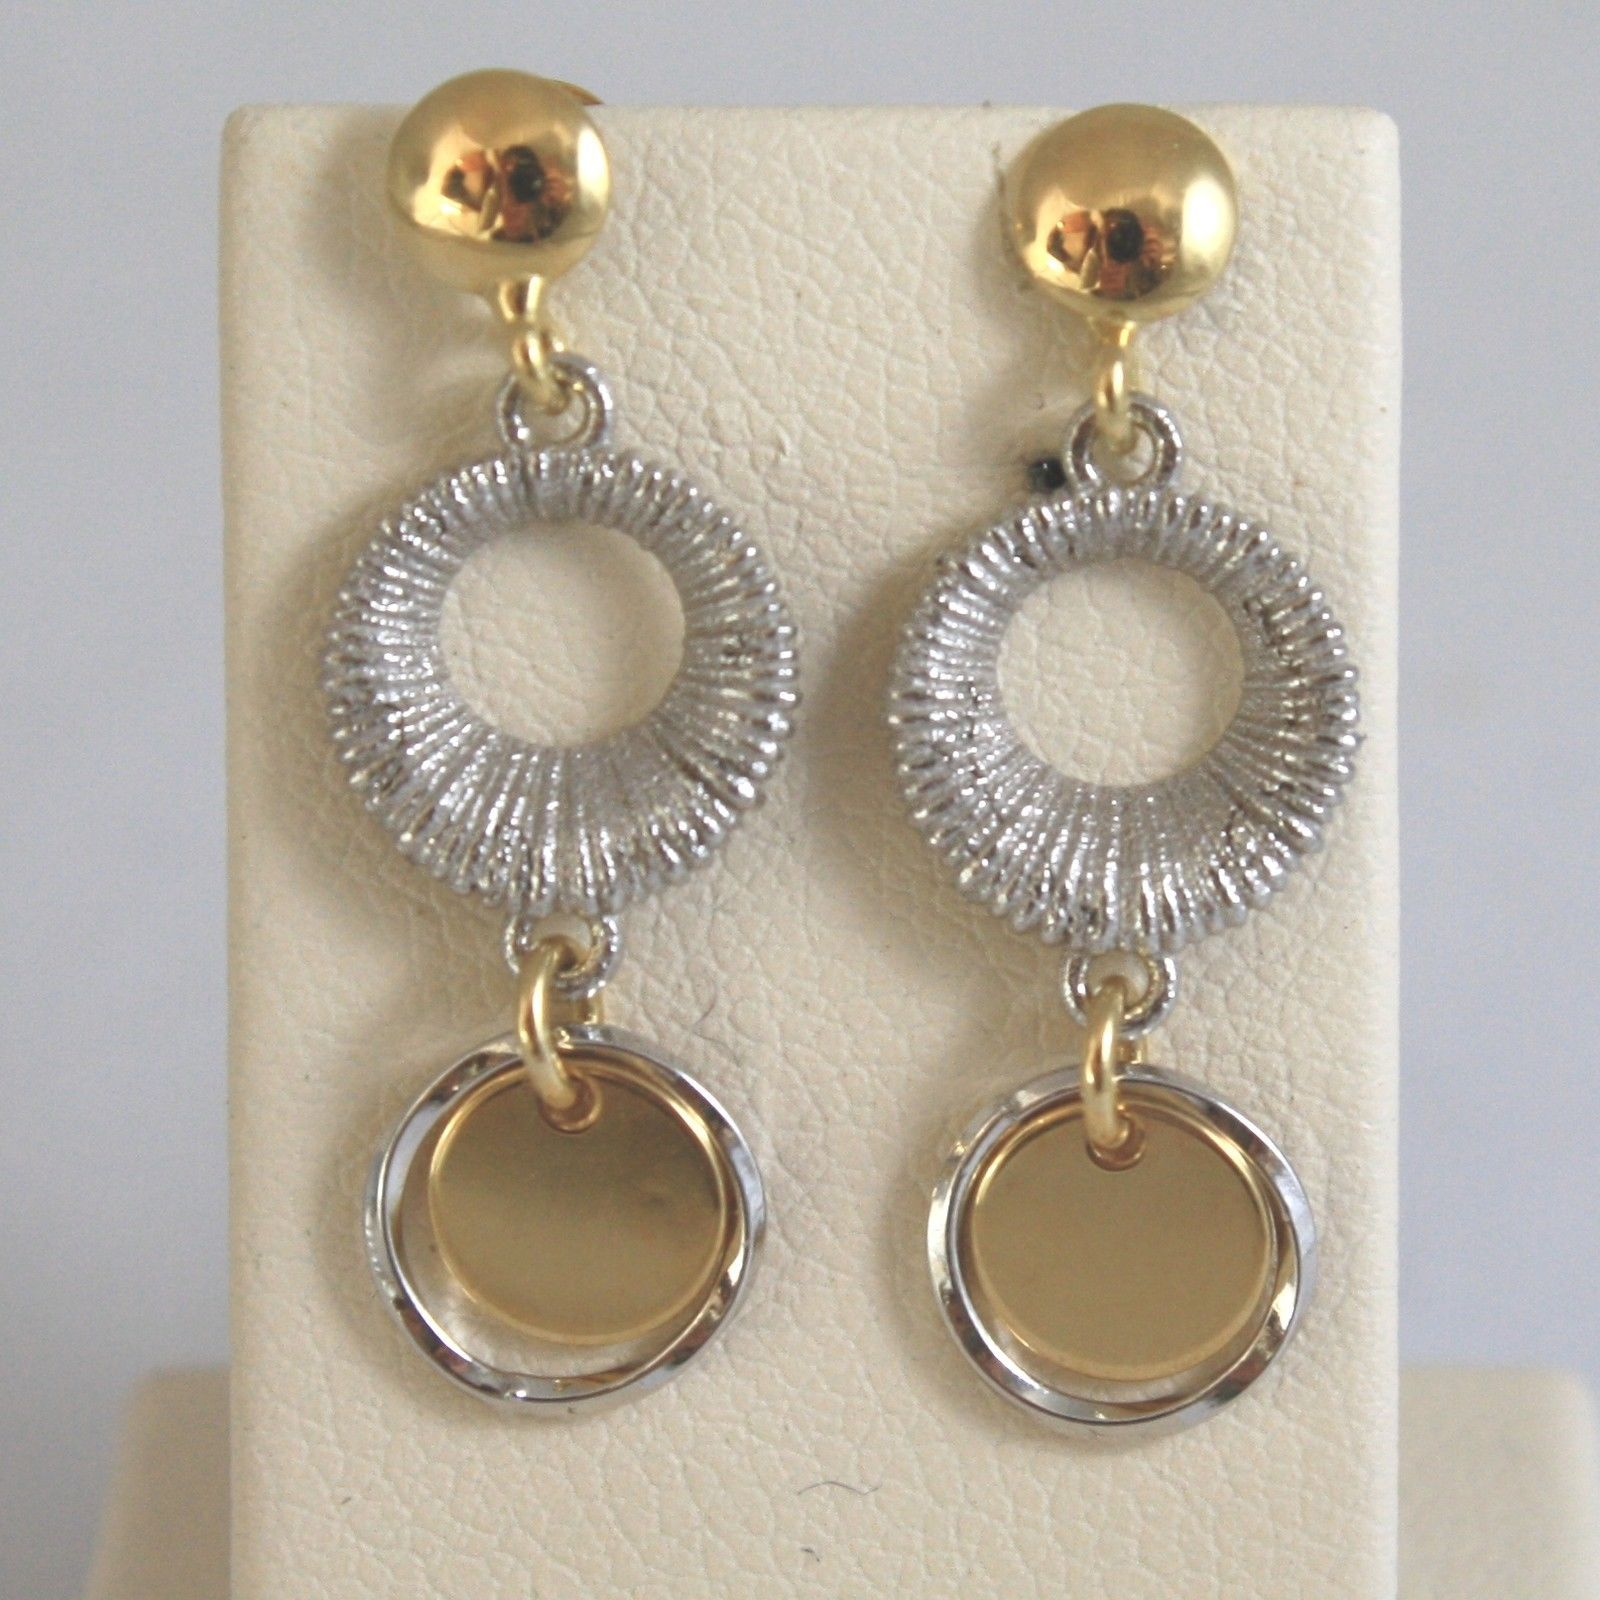 18K SOLID YELLOW AND WHITE GOLD EARRINGS WITH WHEELS  MADE IN ITALY 18K